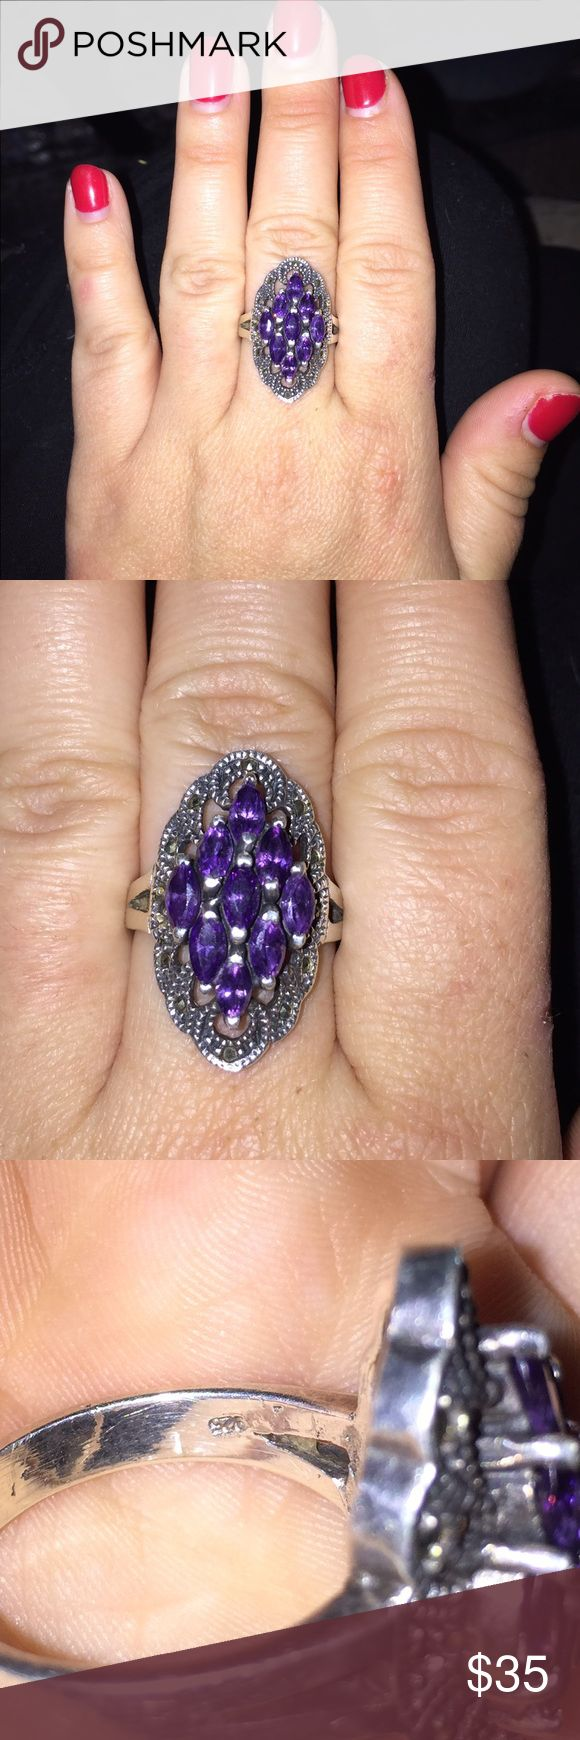 Genuine STAMPED vintage amethyst ring sz 9 925 stamped sterling silver. Genuine amethyst. This ring is pretty old and has held up great. There is some where on it which you can see in the pictures. It's very hard for me to sell since it was my grandmothers so it is legitimately vintage. May need a little cleaning. Jewelry Rings